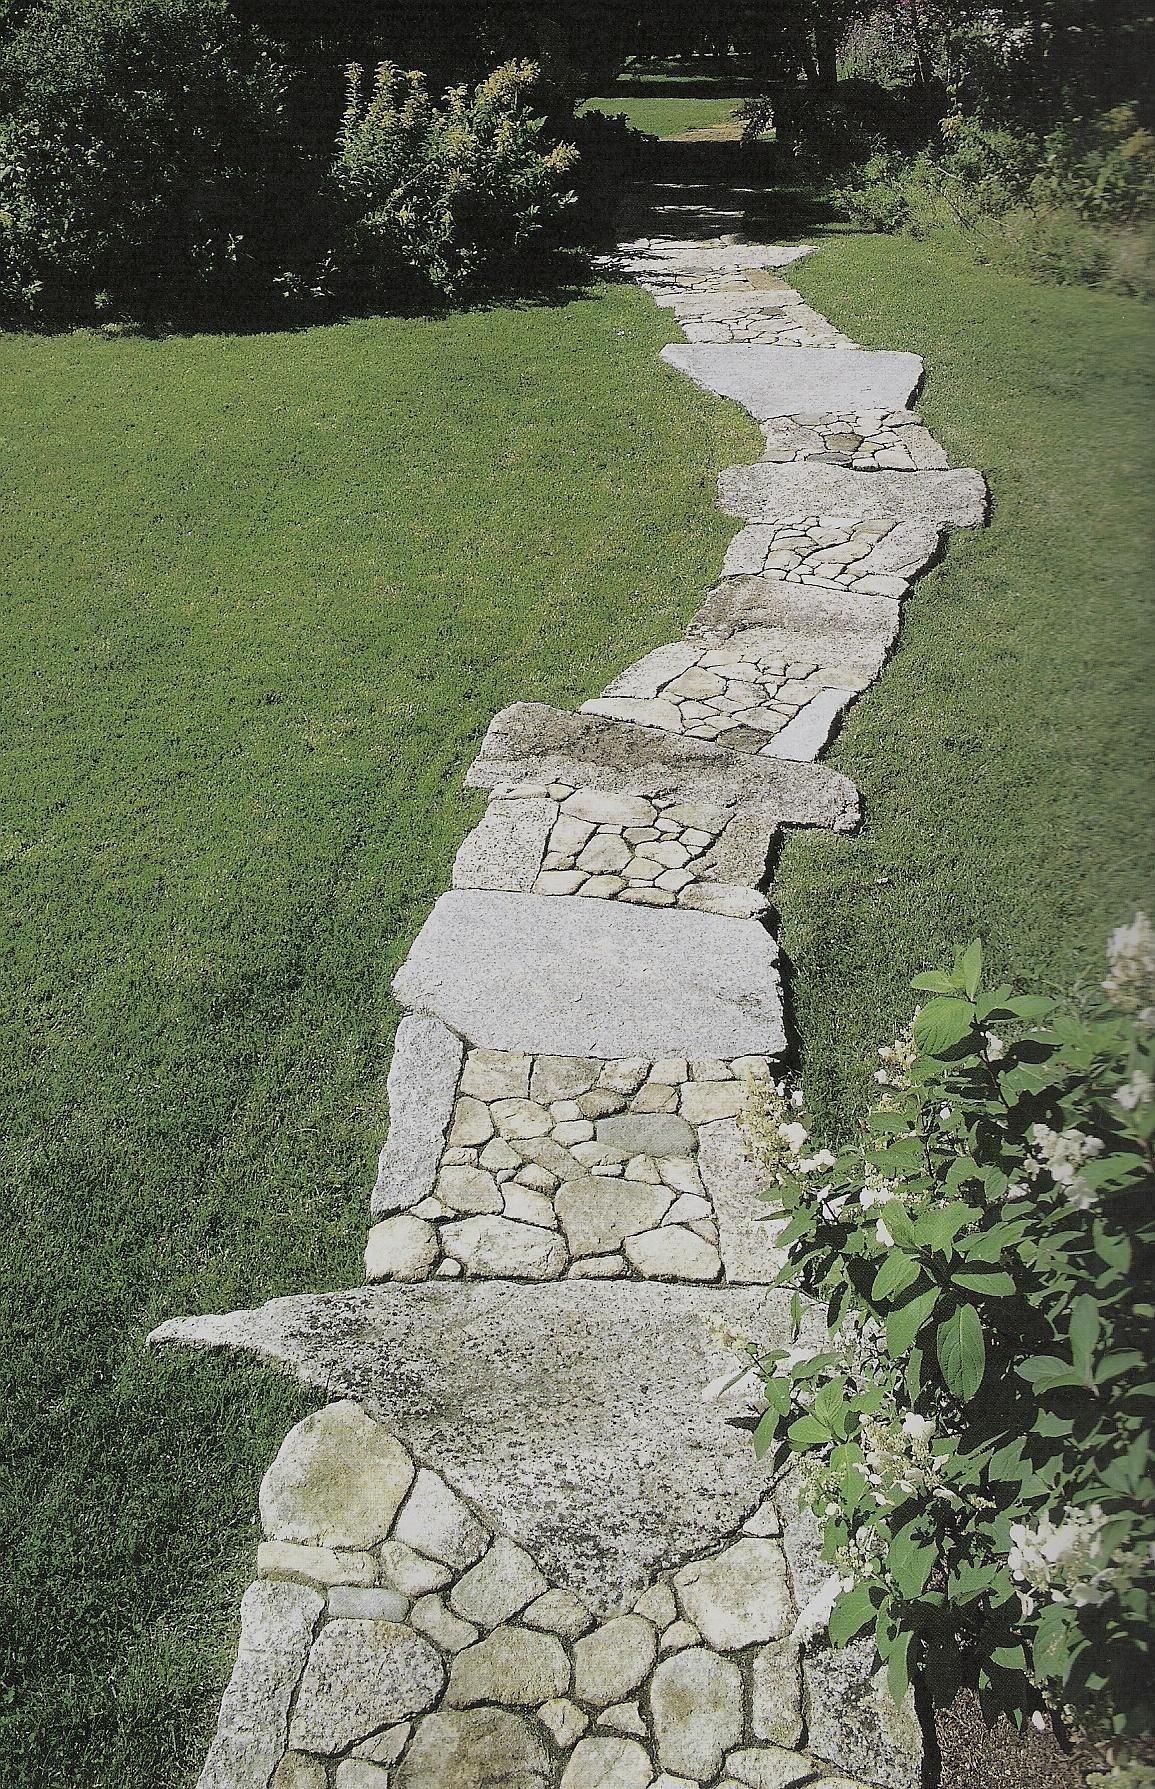 Stone walkway walkways by blades of grass lawn care llc for Stone path in grass